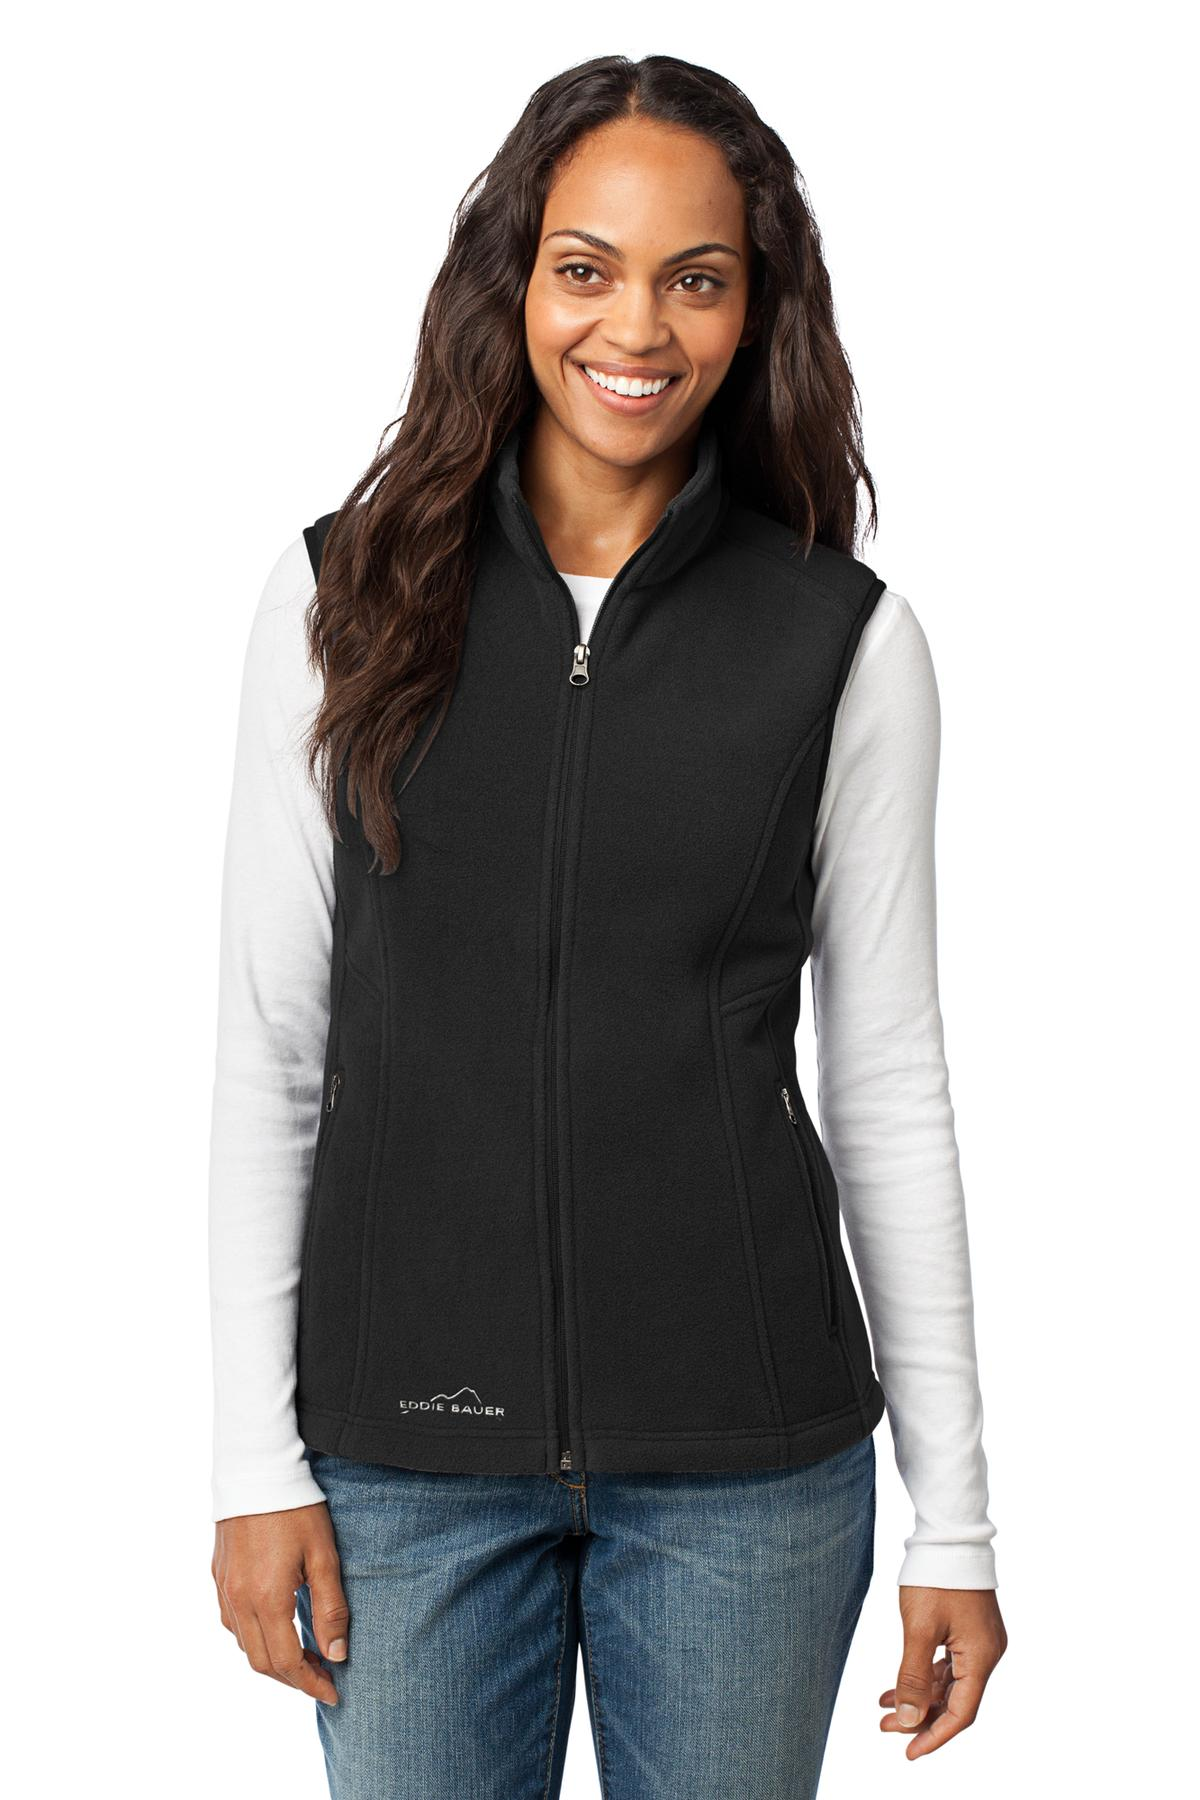 Eddie Bauer ®  - Ladies Fleece Vest. EB205 - Black